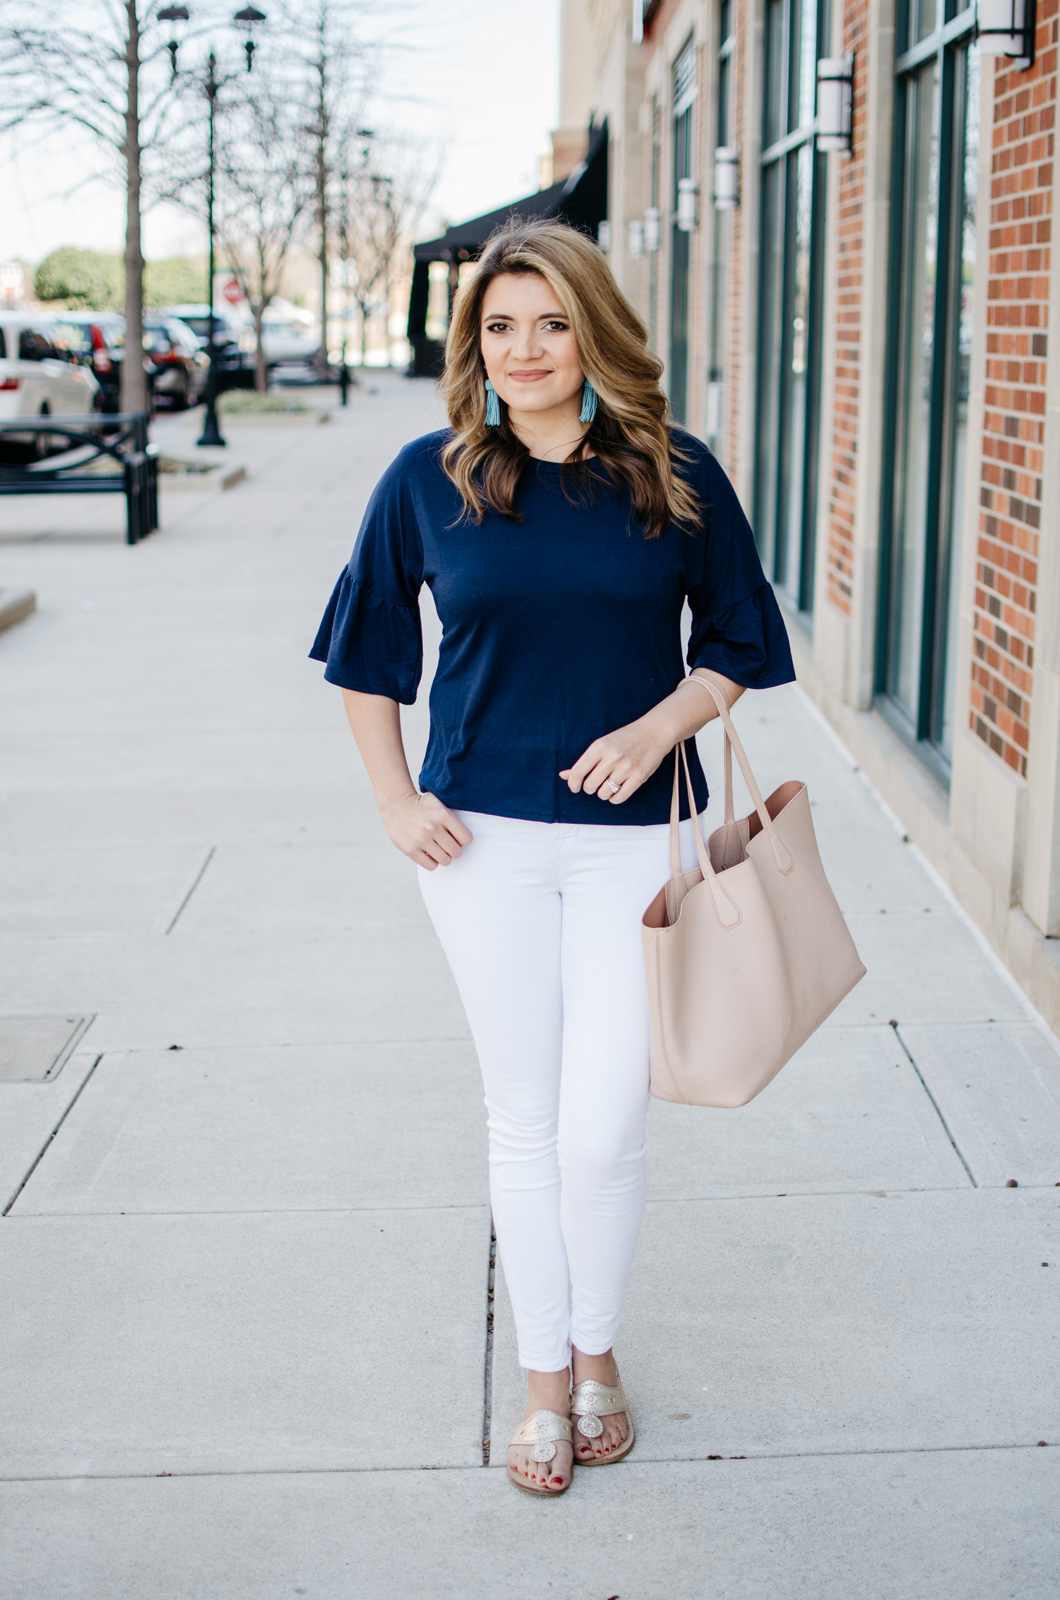 simple spring outfit - bell sleeve tee | Want more cute spring outfits? Head to bylaurenm.com!